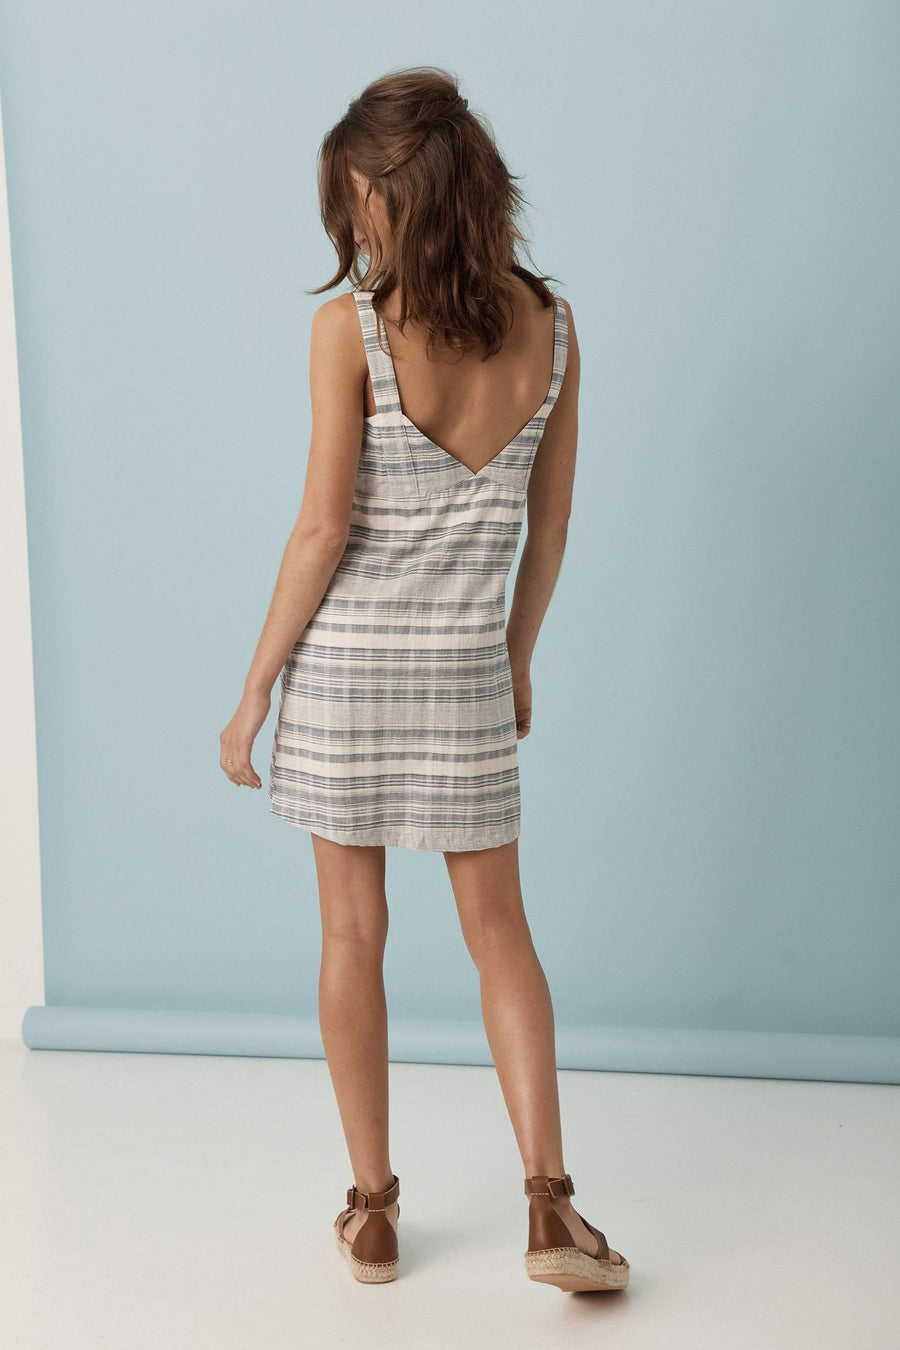 Saint Helena Mademoiselle Summer Dress Blue Gingham